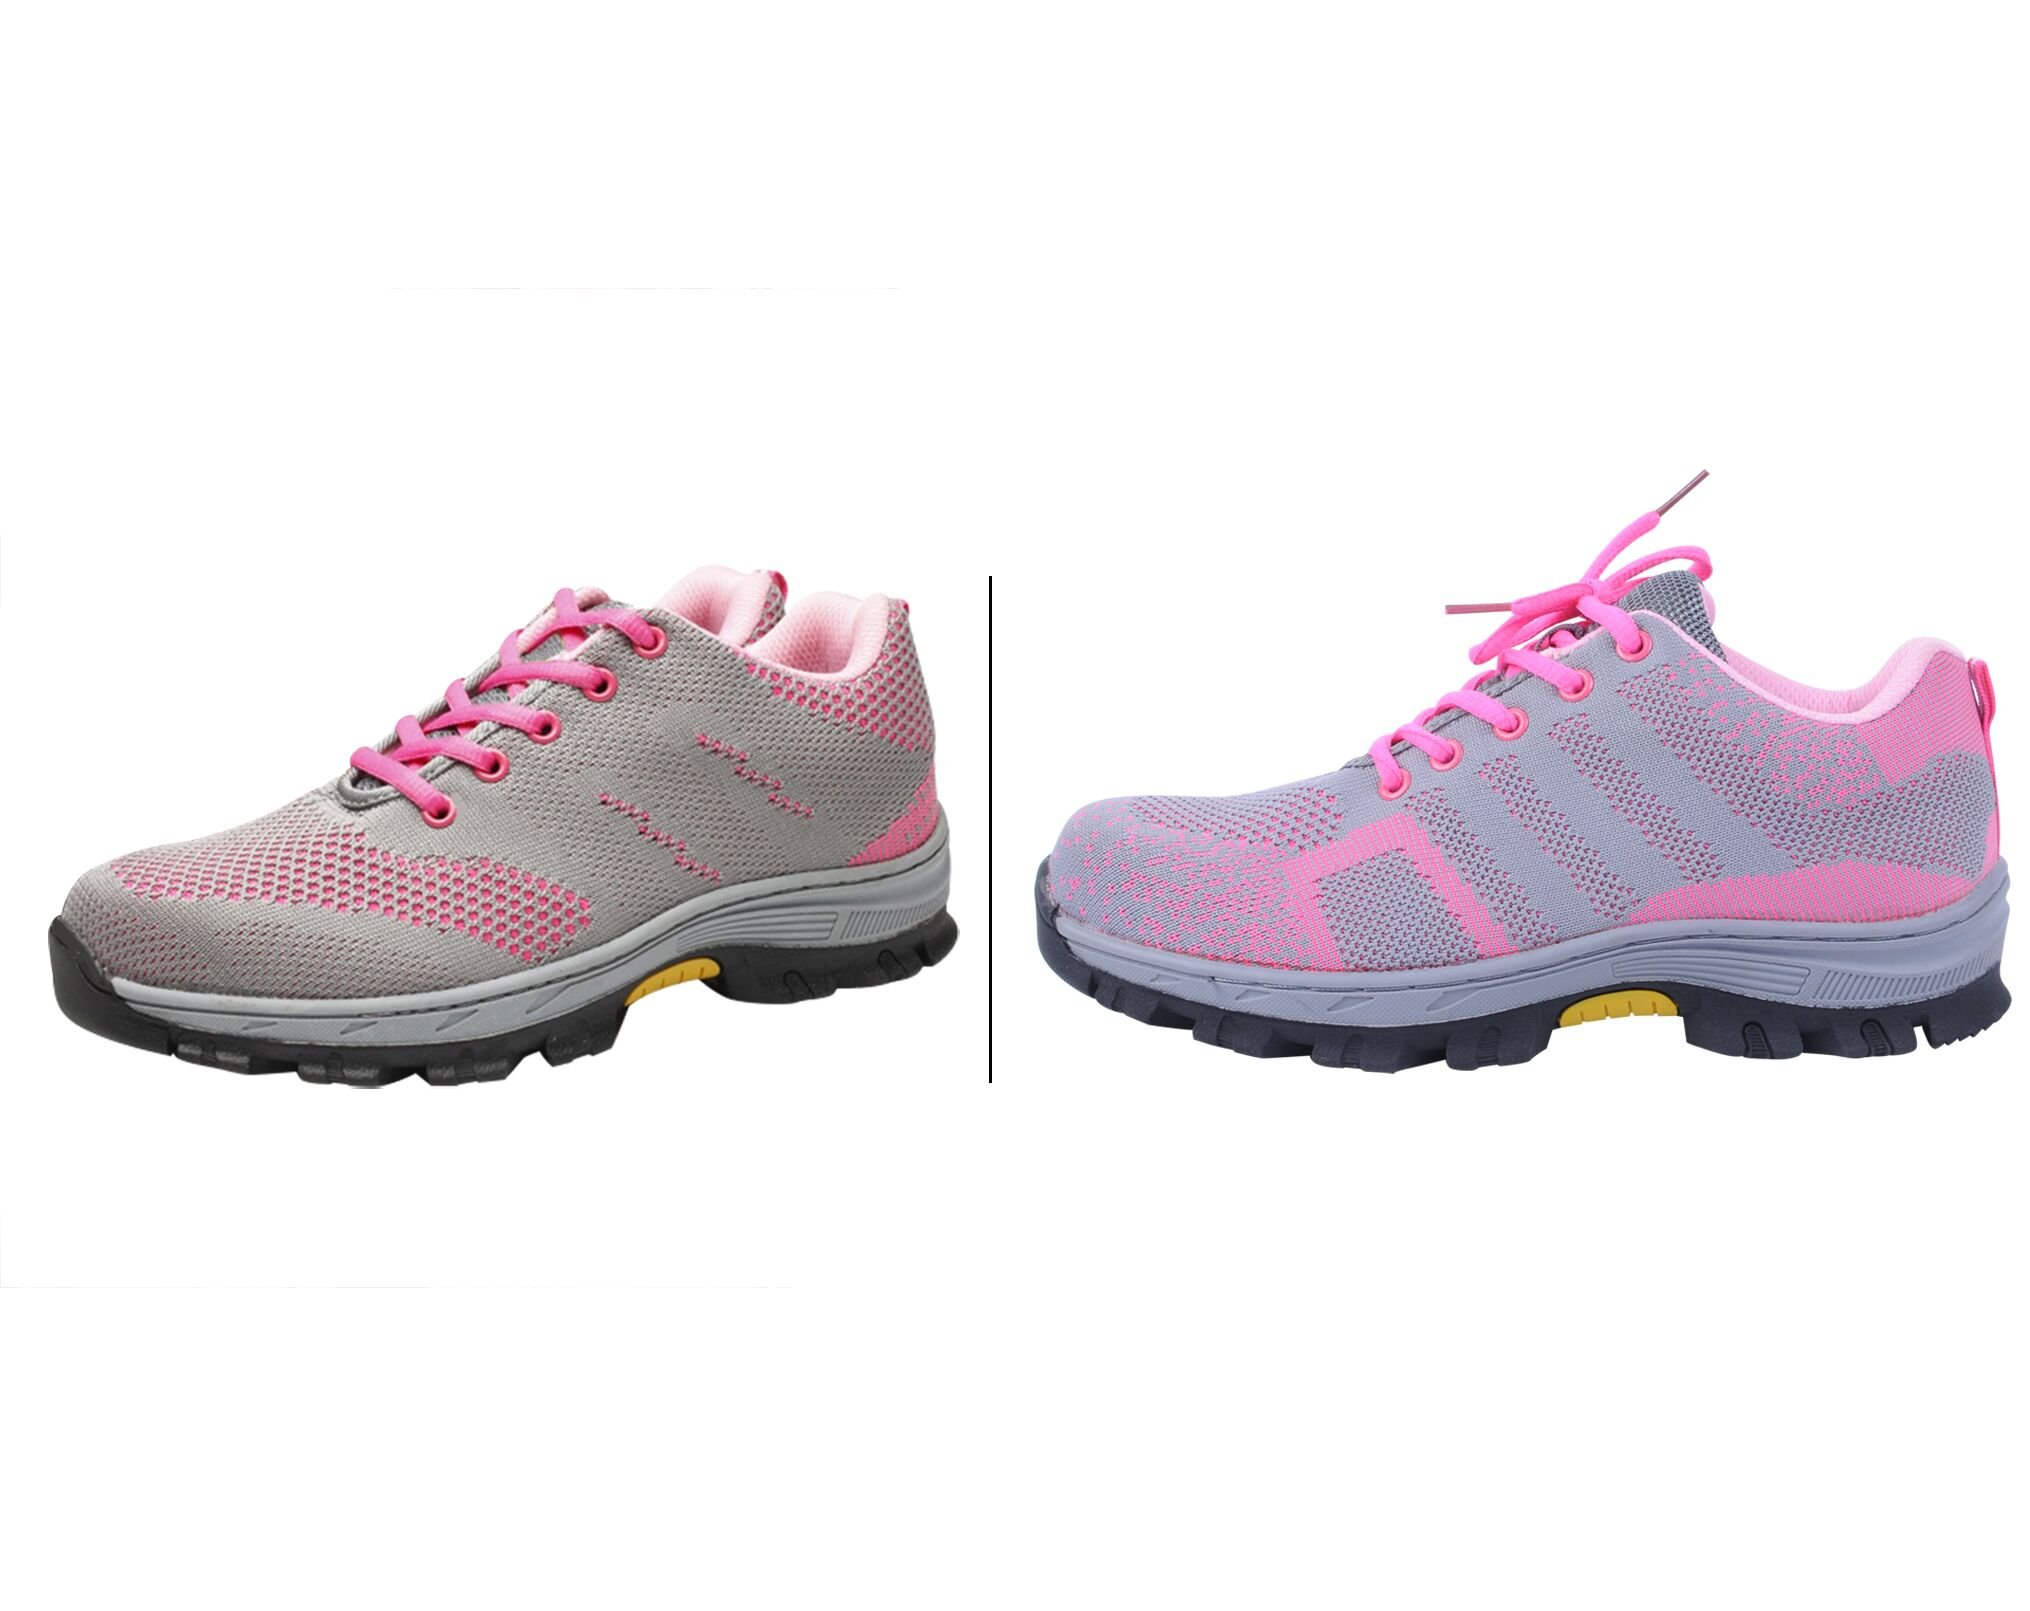 Optimal Women's Safety Shoes Work Shoes Protect Toe Shoes … by Optimal Product (Image #1)